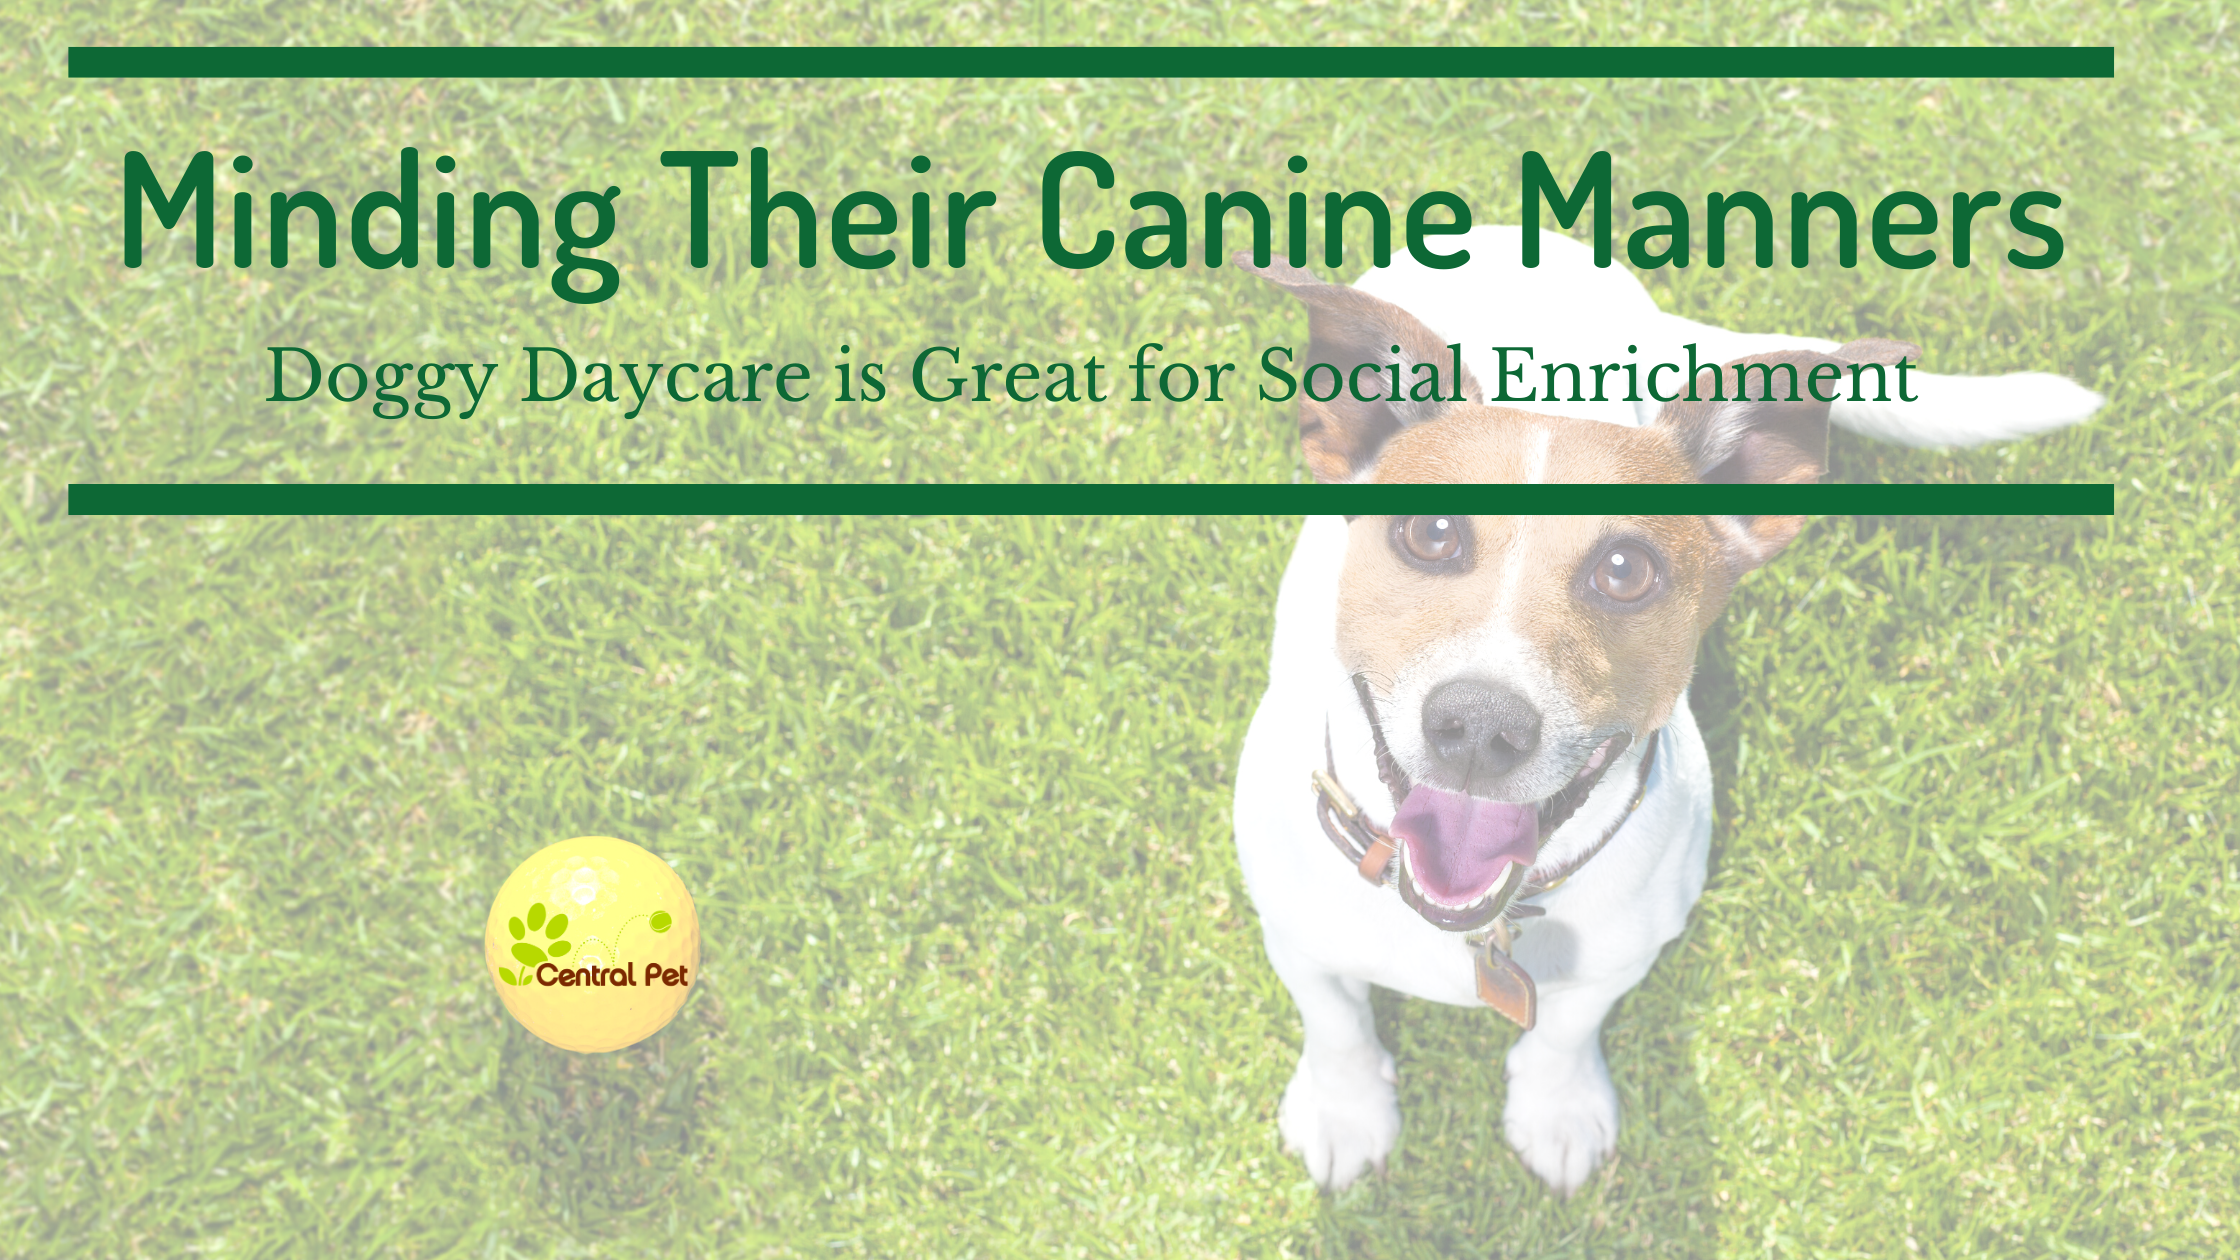 Minding Their Canine Manners: Doggy Daycare is Great Social Enrichment